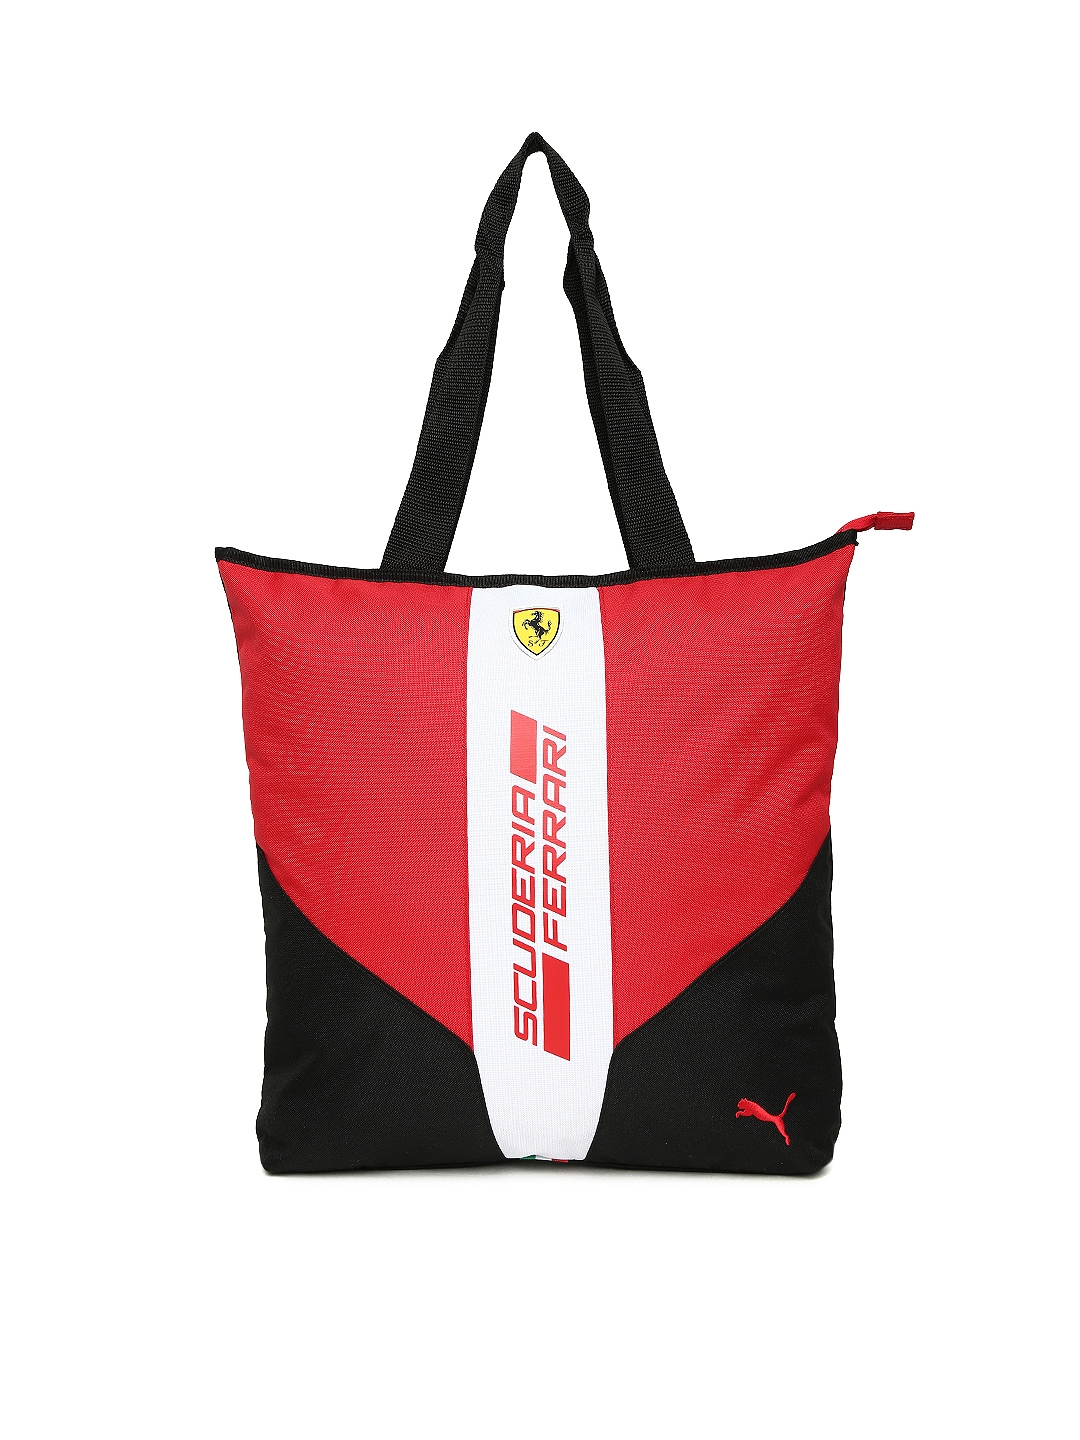 657406c674af Buy Puma Red   Black Printed Ferrari Fanwear Shopper Tote Bag ...